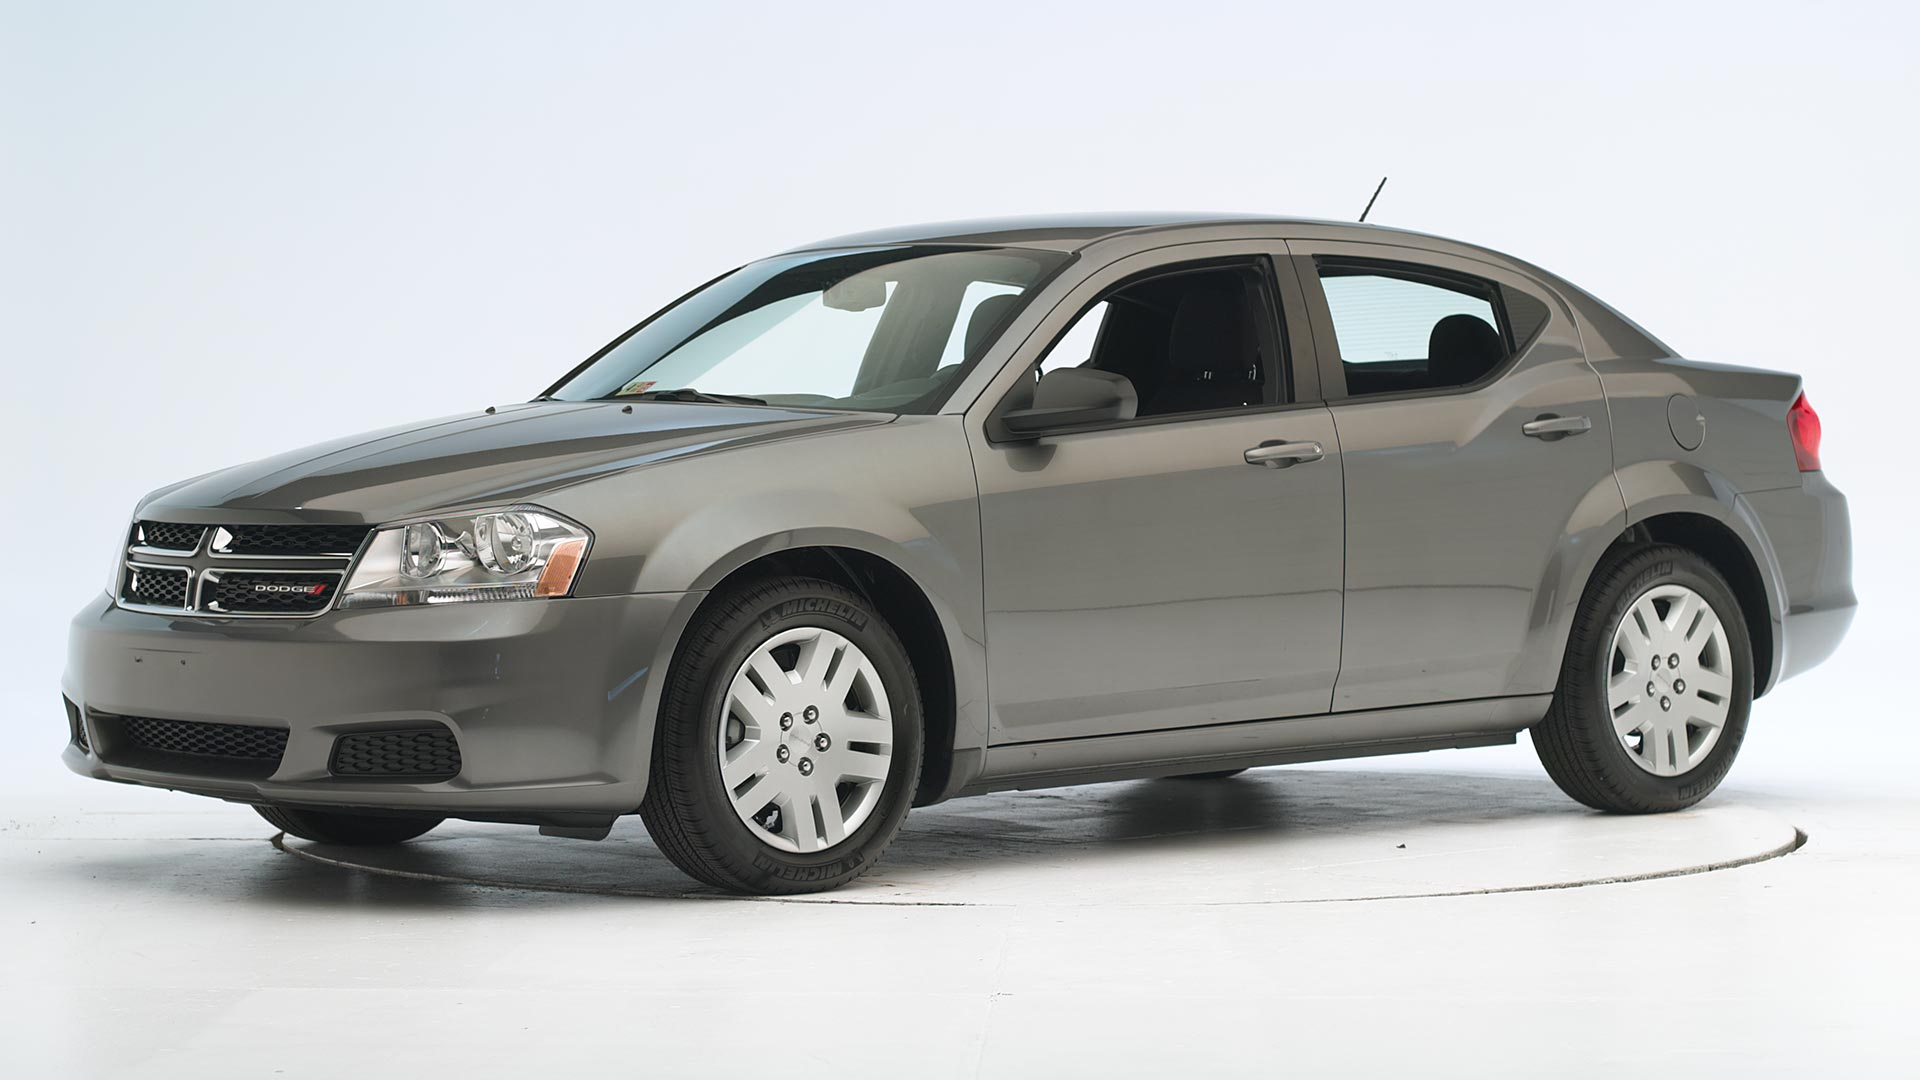 2012 Dodge Avenger 4-door sedan